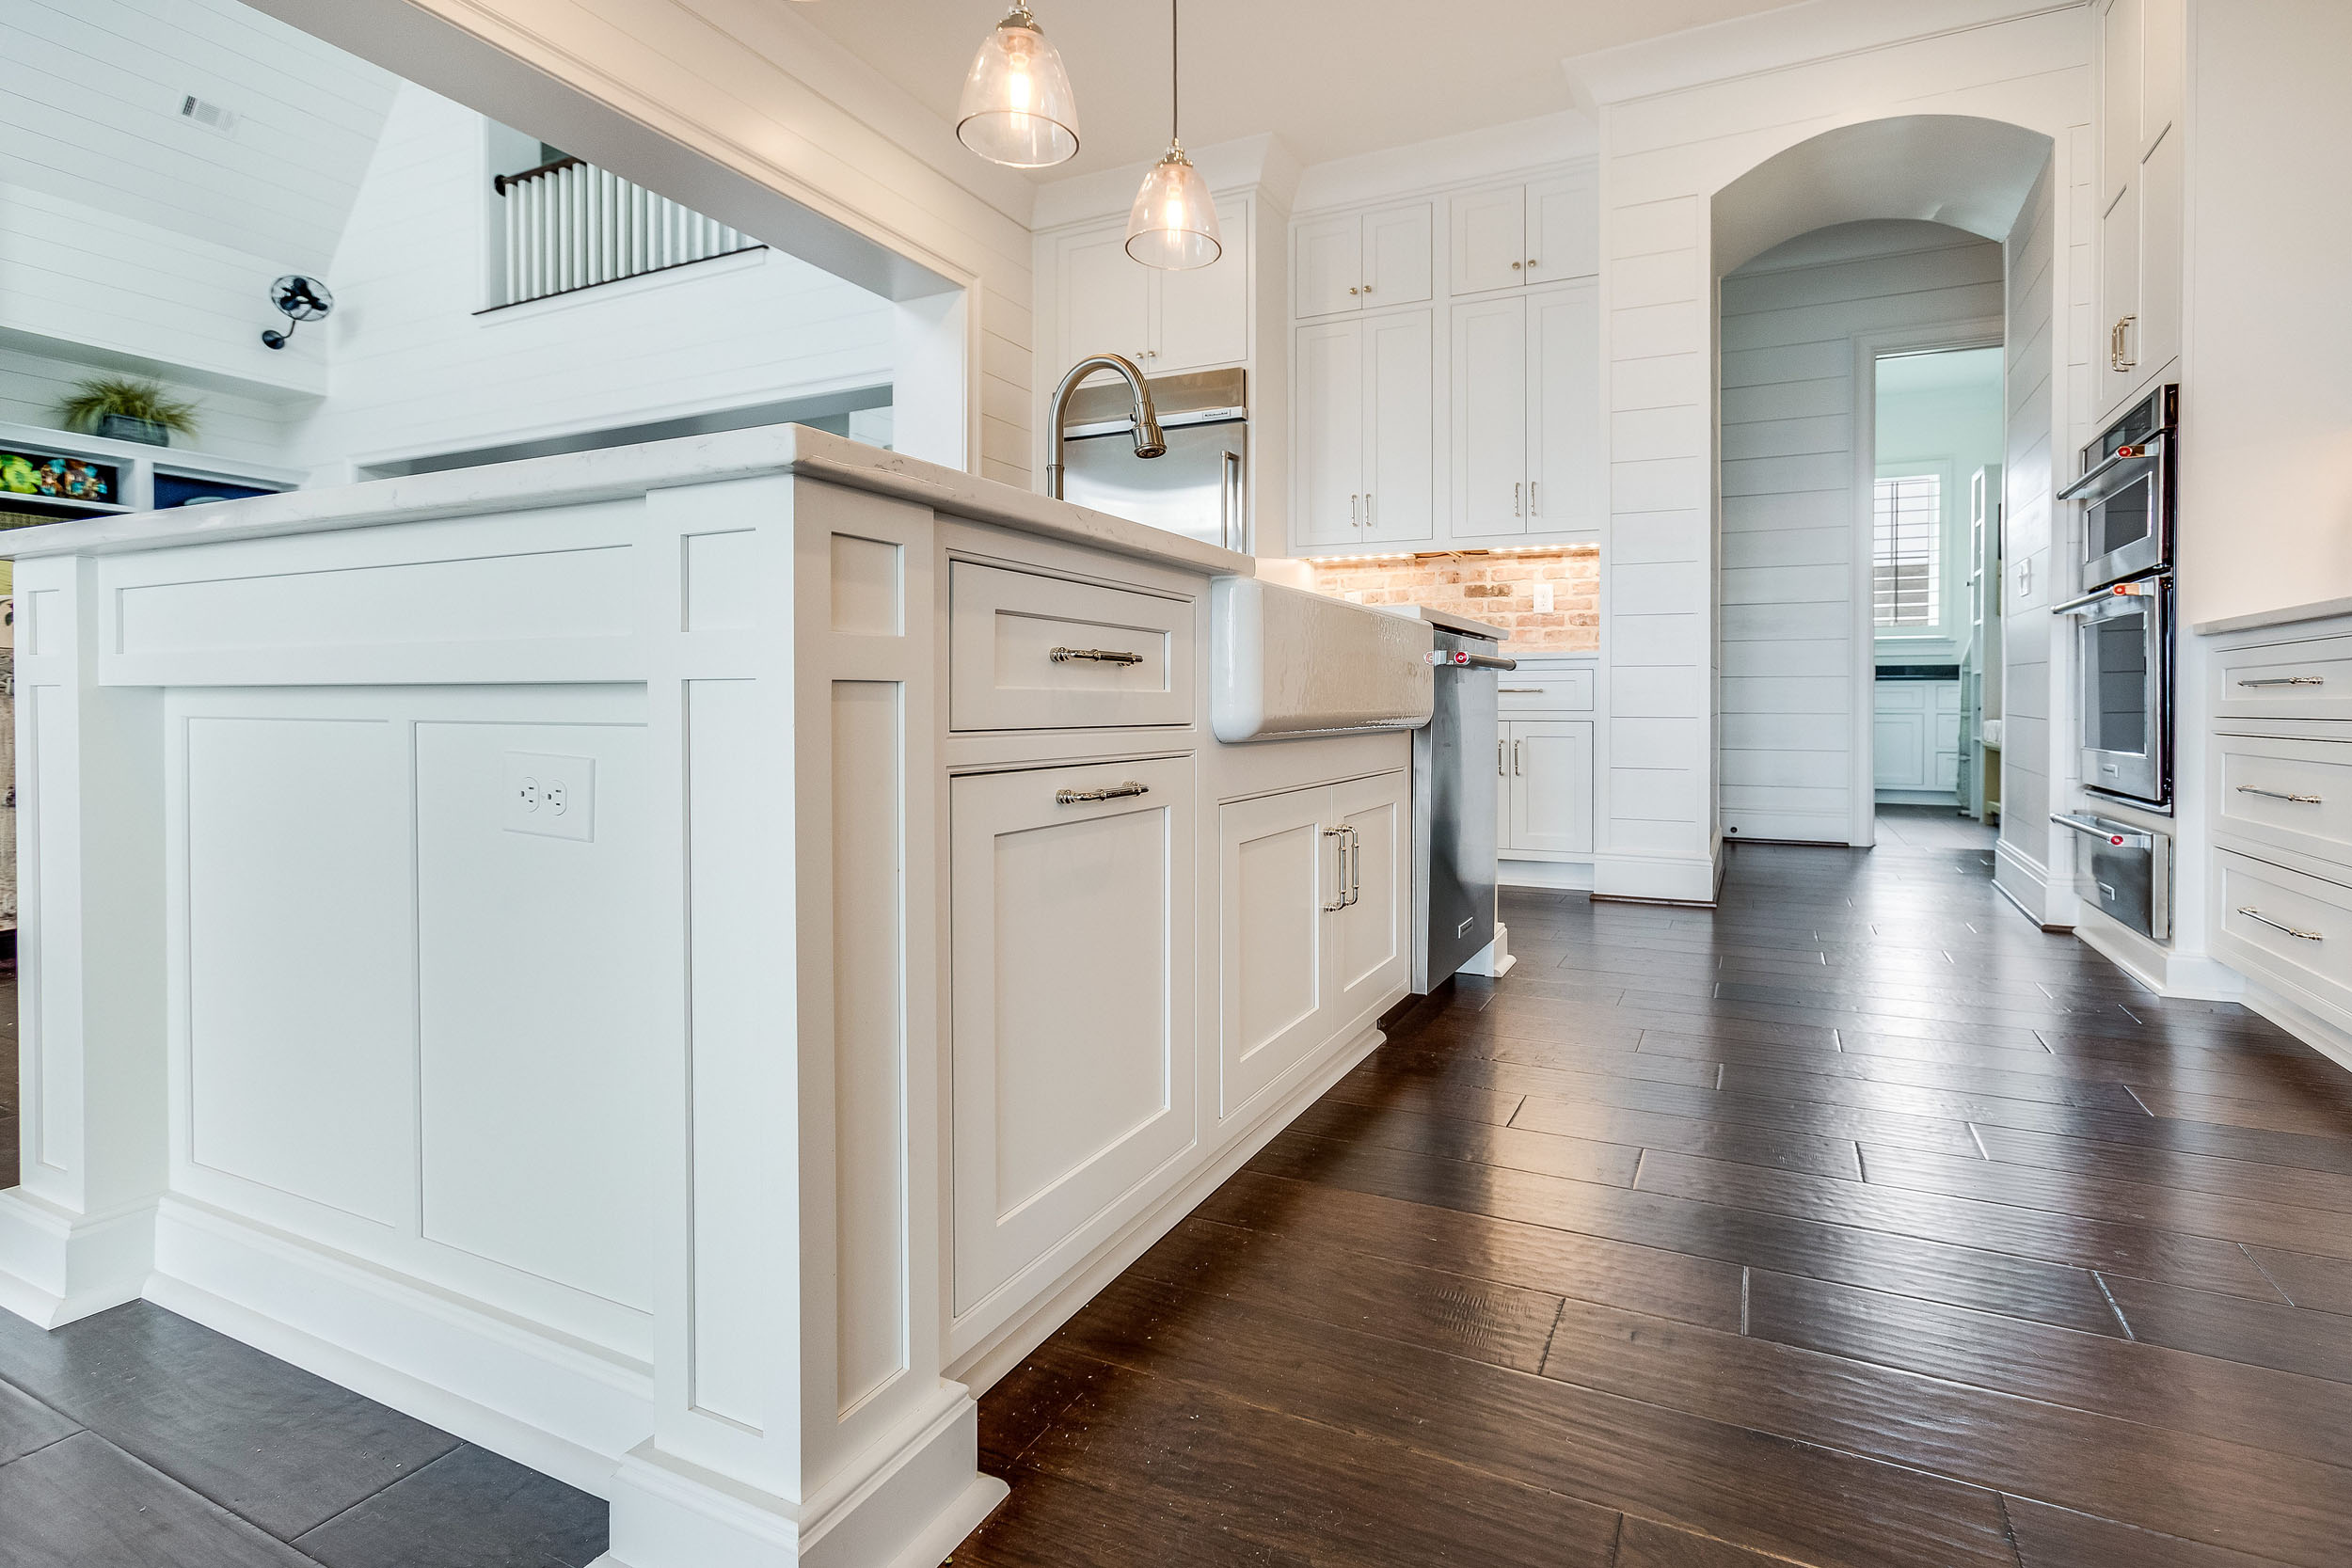 The end of island cabinetry has custom details.